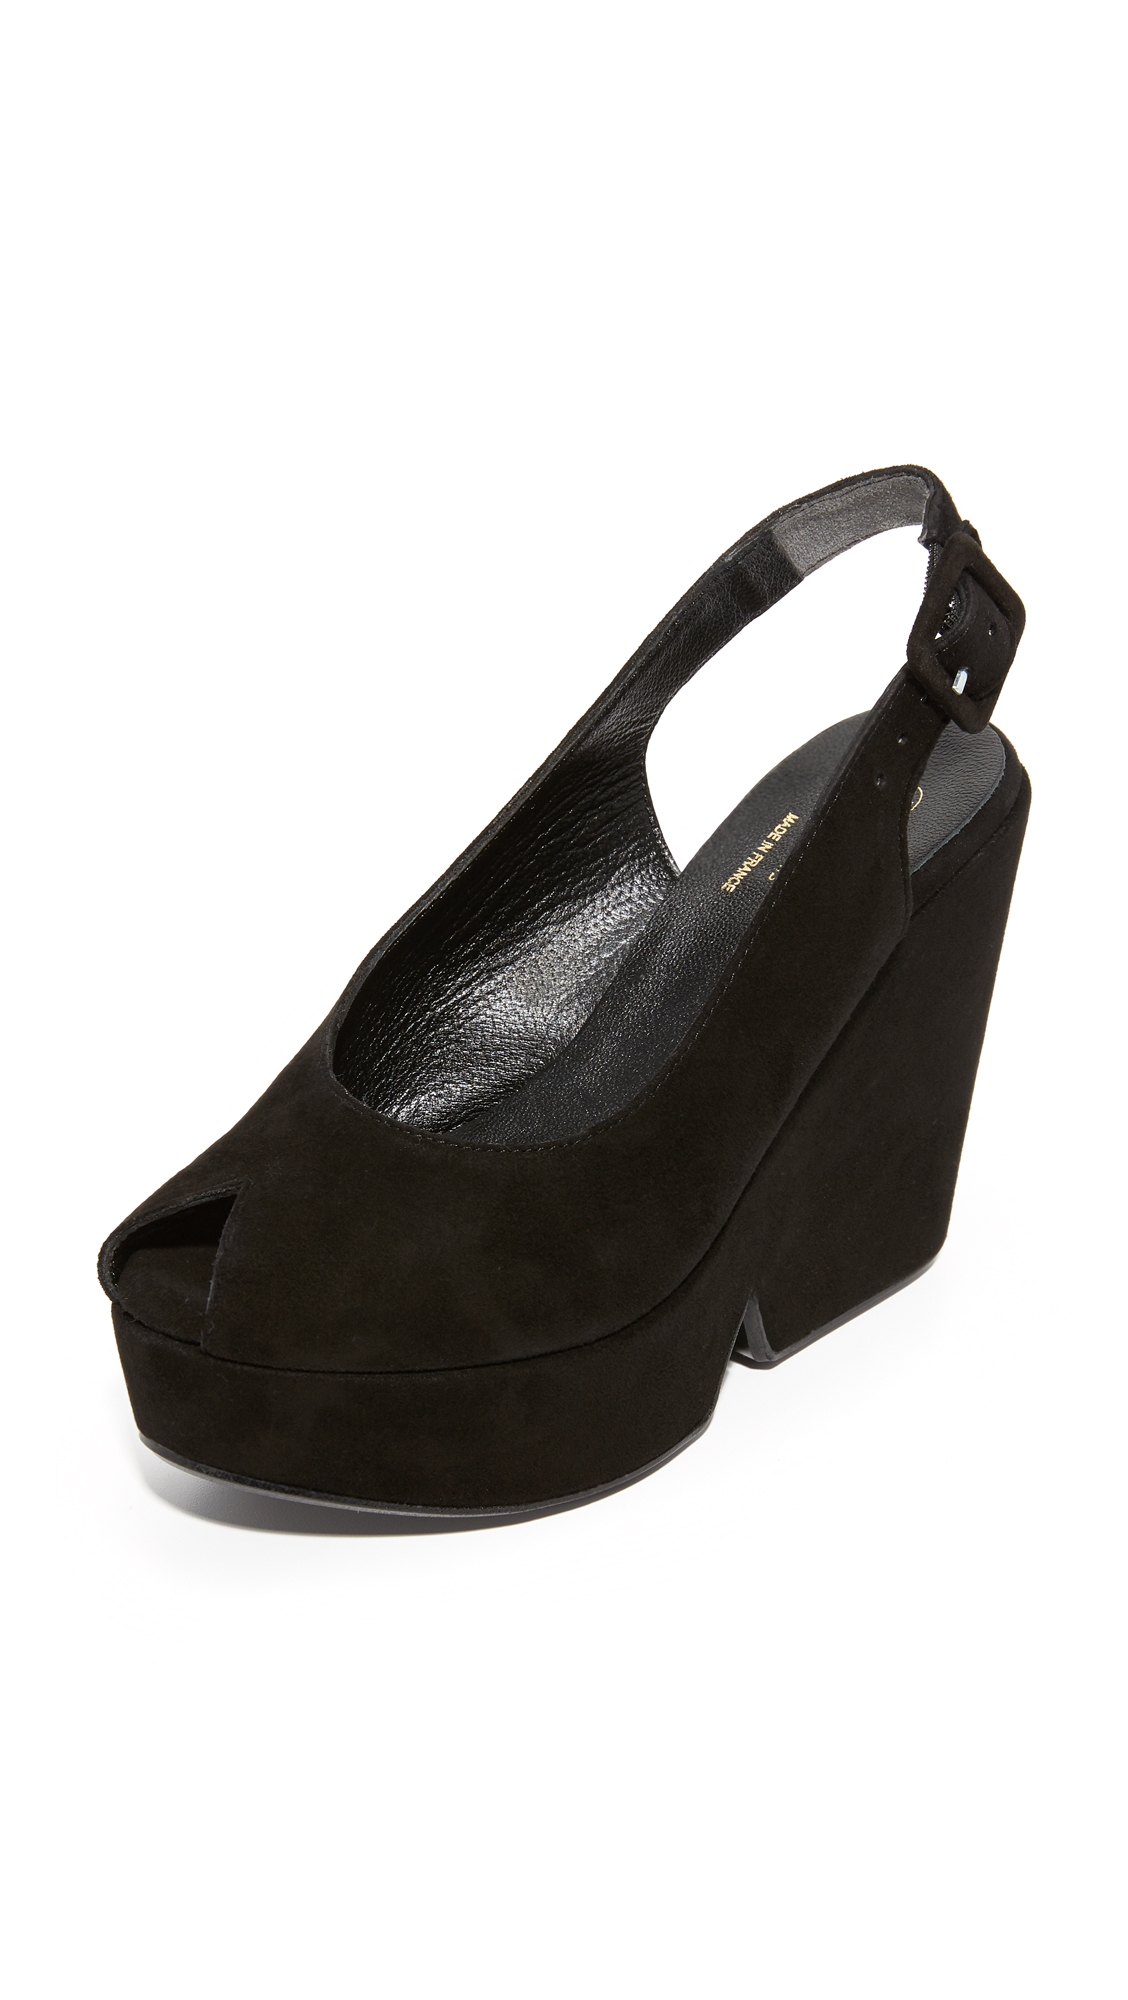 Robert Clergerie Peep Toe Wedge Sandals - Black